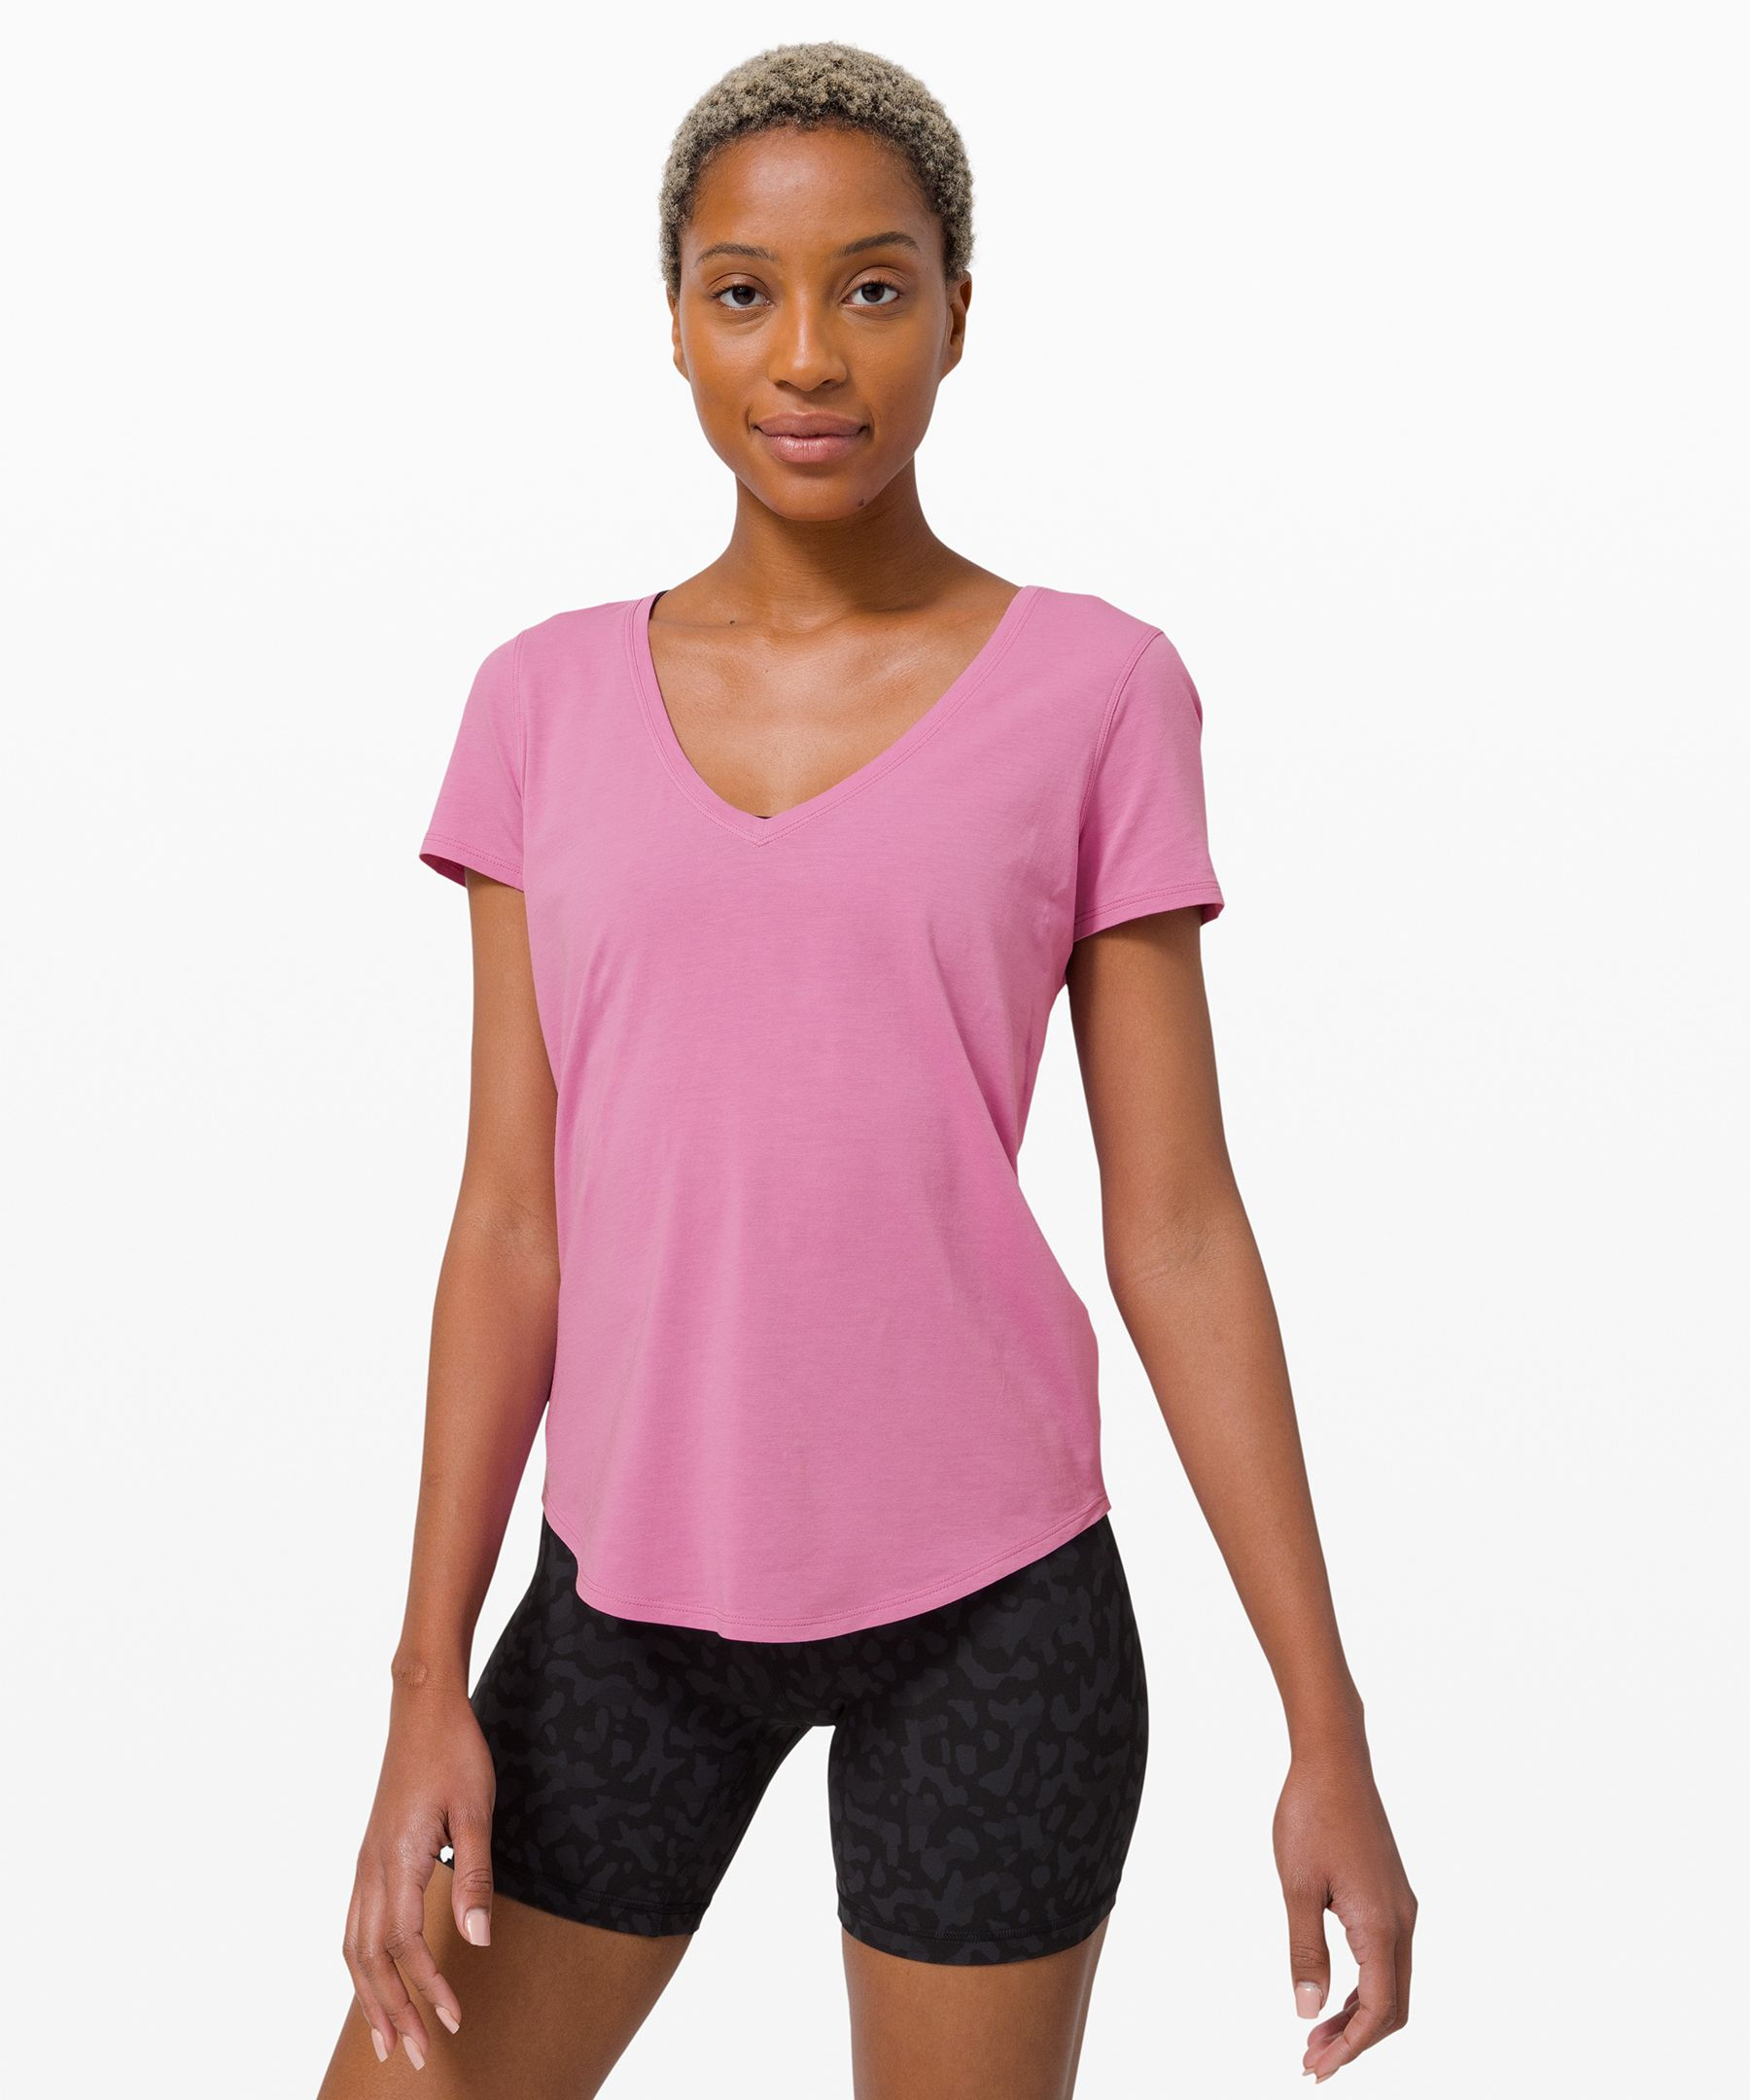 This super-soft v-neck tee  won\\\'t wear out its welcome.  With added stretch for  mobility and an easy fit to  keep you cool, it\\\'s your  versatile essential, every day.